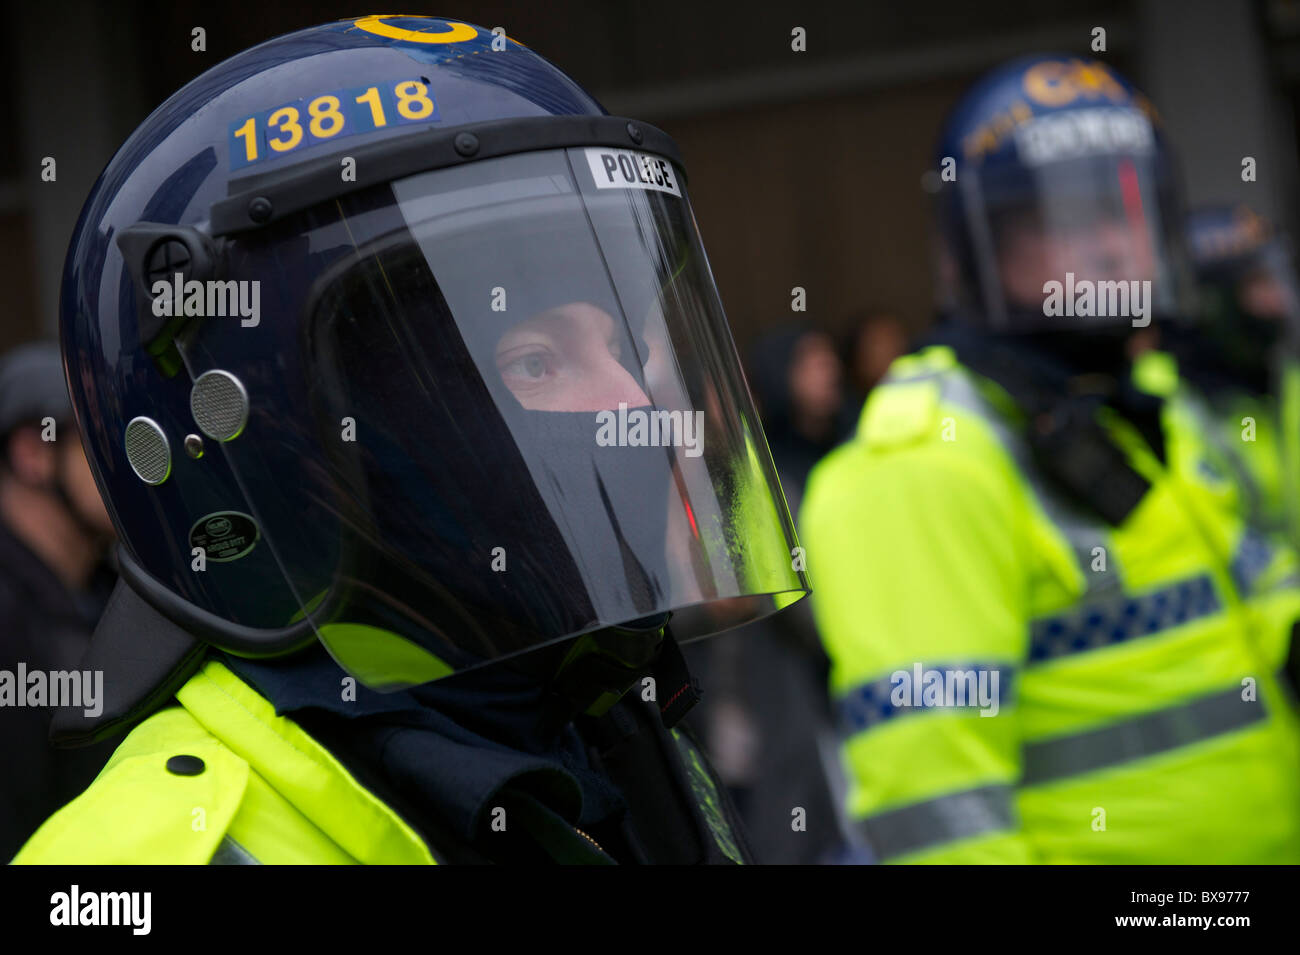 A phalanx of police officers, numbering in excess of 1,400, equipped with riot gear and security dogs, kept a rally Stock Photo